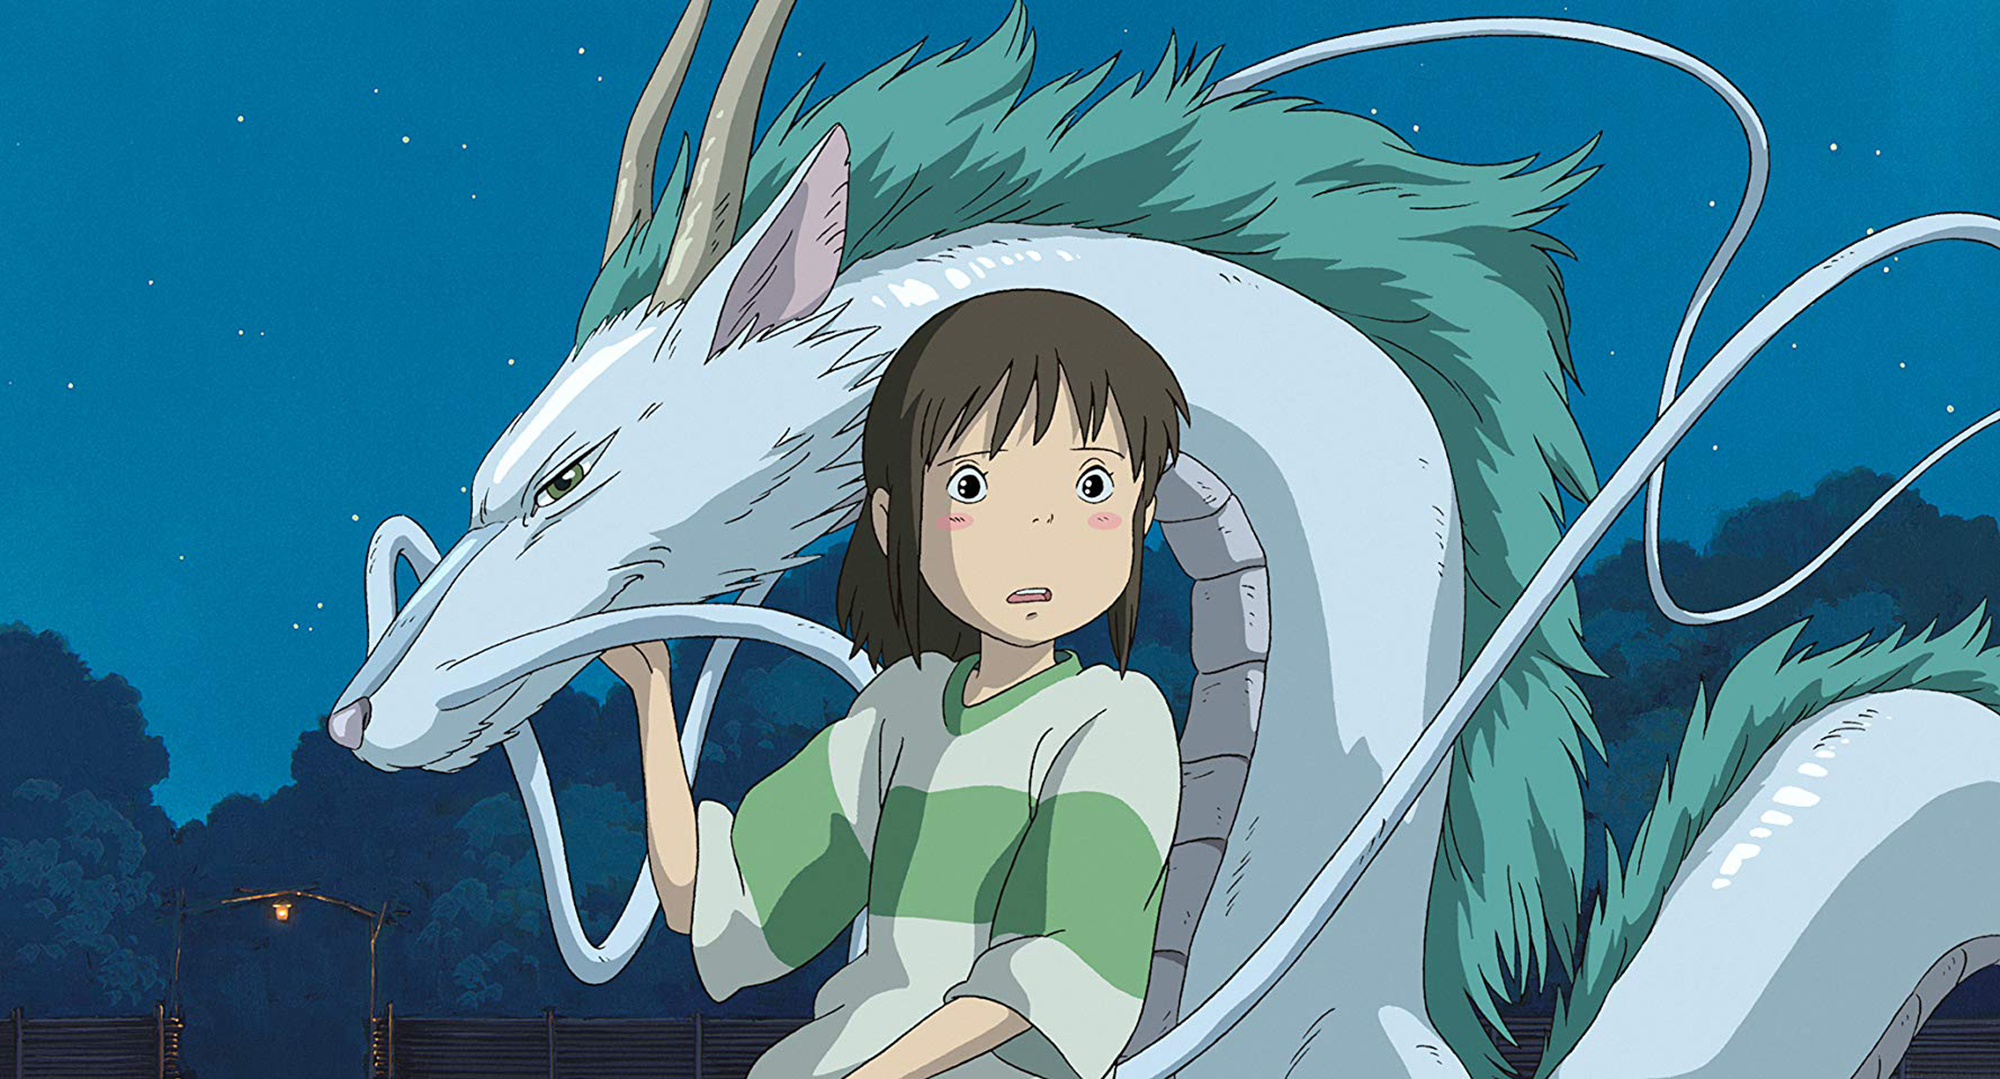 Studio Ghibli films are coming to Netflix, but not in North America or Japan